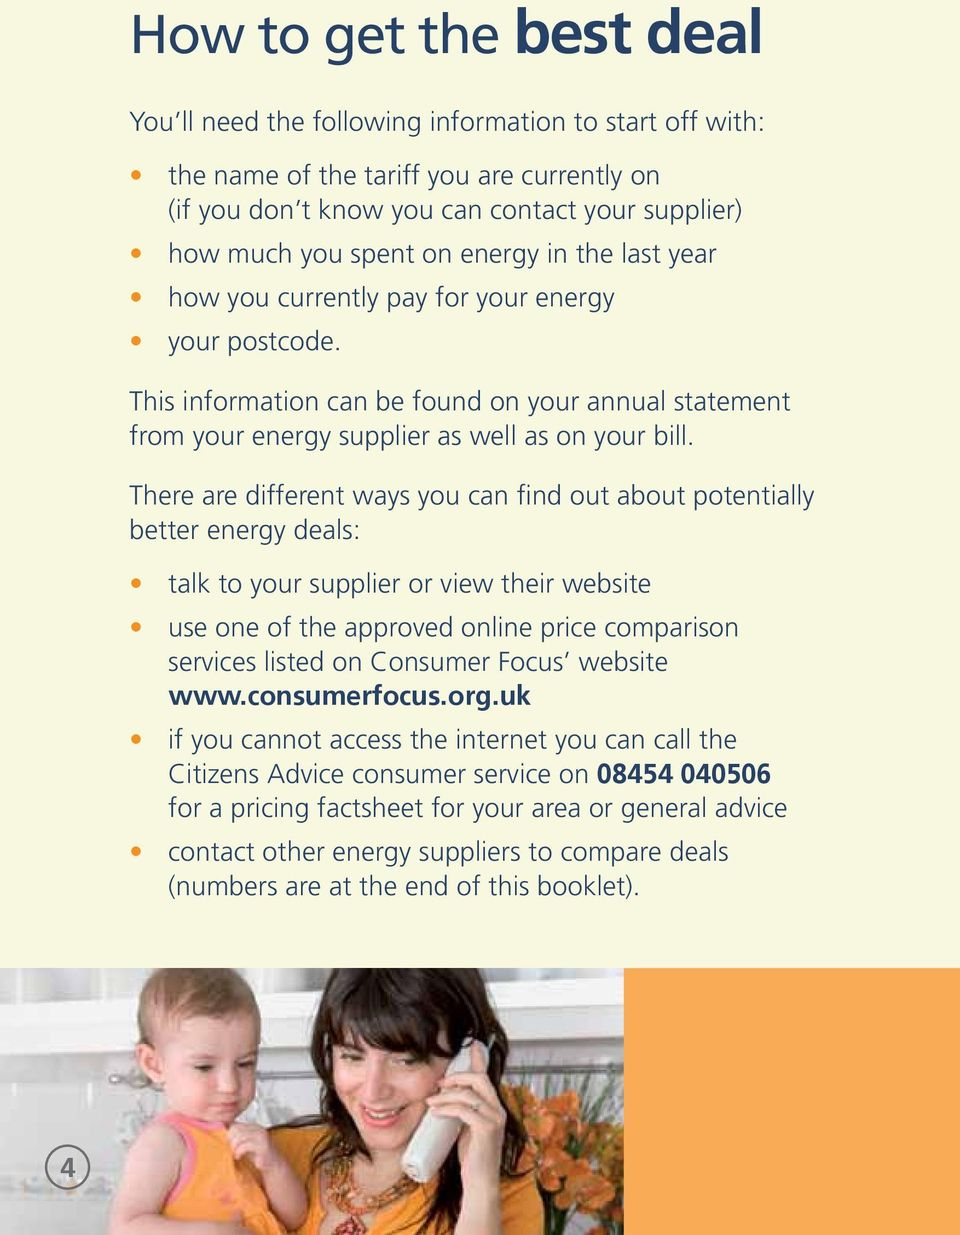 There are different ways you can find out about potentially better energy deals: talk to your supplier or view their website use one of the approved online price comparison services listed on